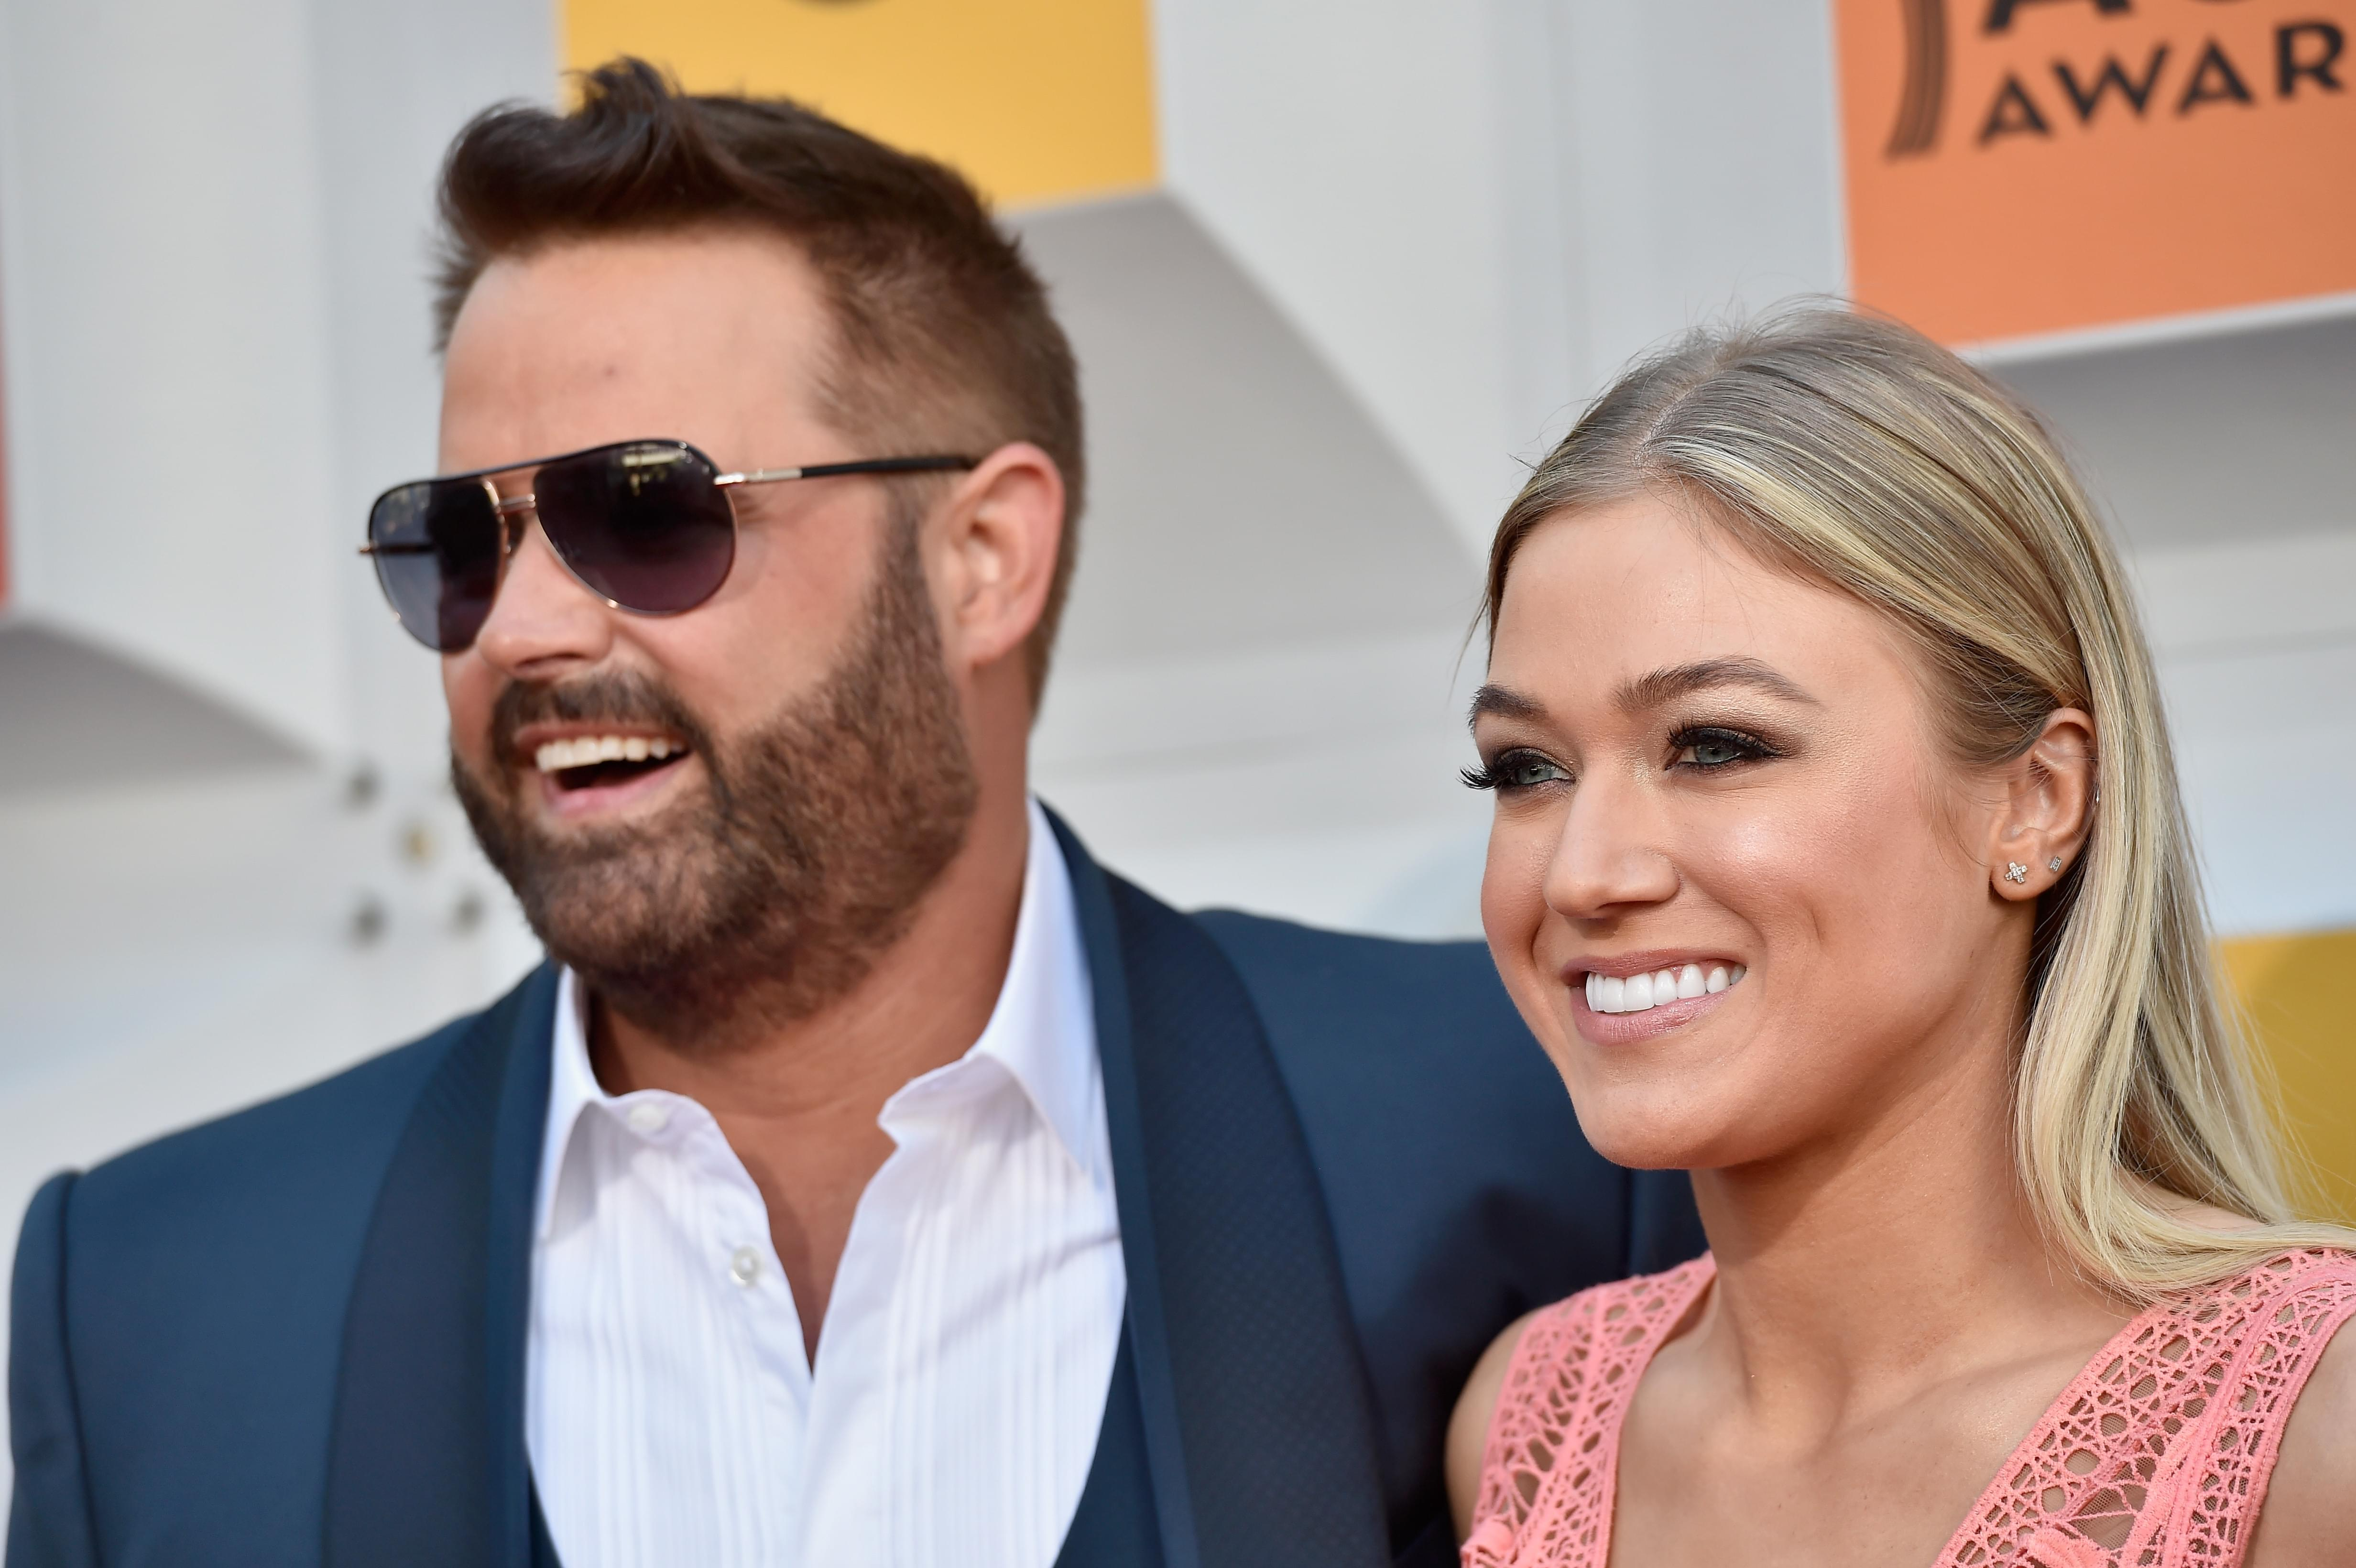 Tatiana And Randy Houser Announce They're Expecting With The Cutest Photo